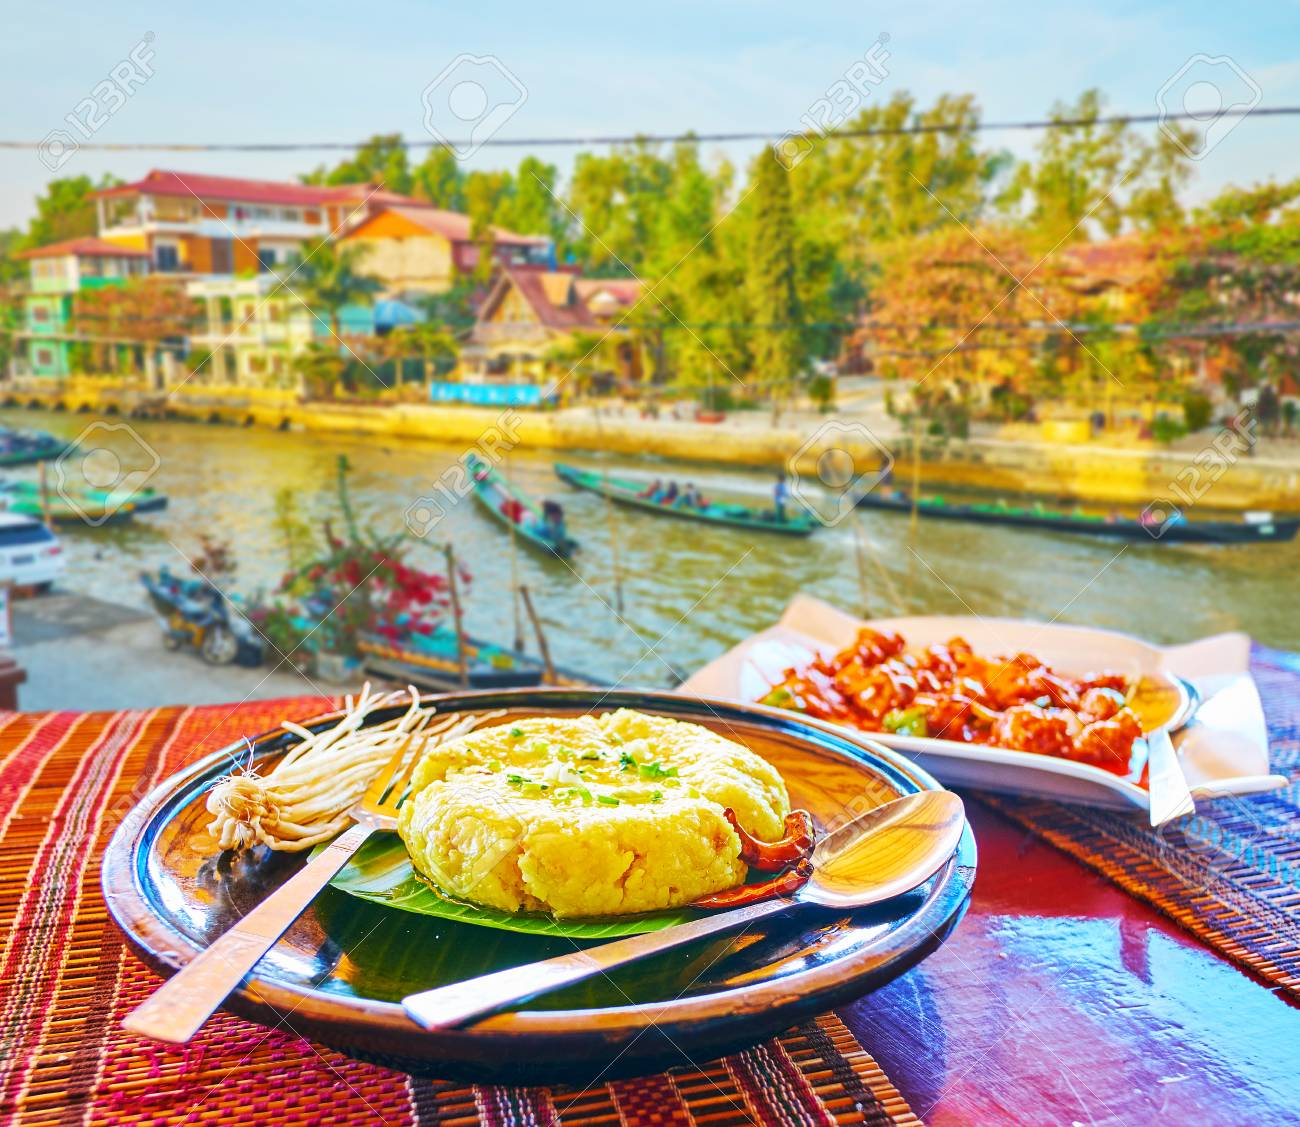 Enjoy traditional Burmese cuisine with a view on Inle Lake canal - banana leaf wrap with sticky rice and vegetables in outdoor terrace of cafe in Nyaungshwe, Myanmar. - 121649034